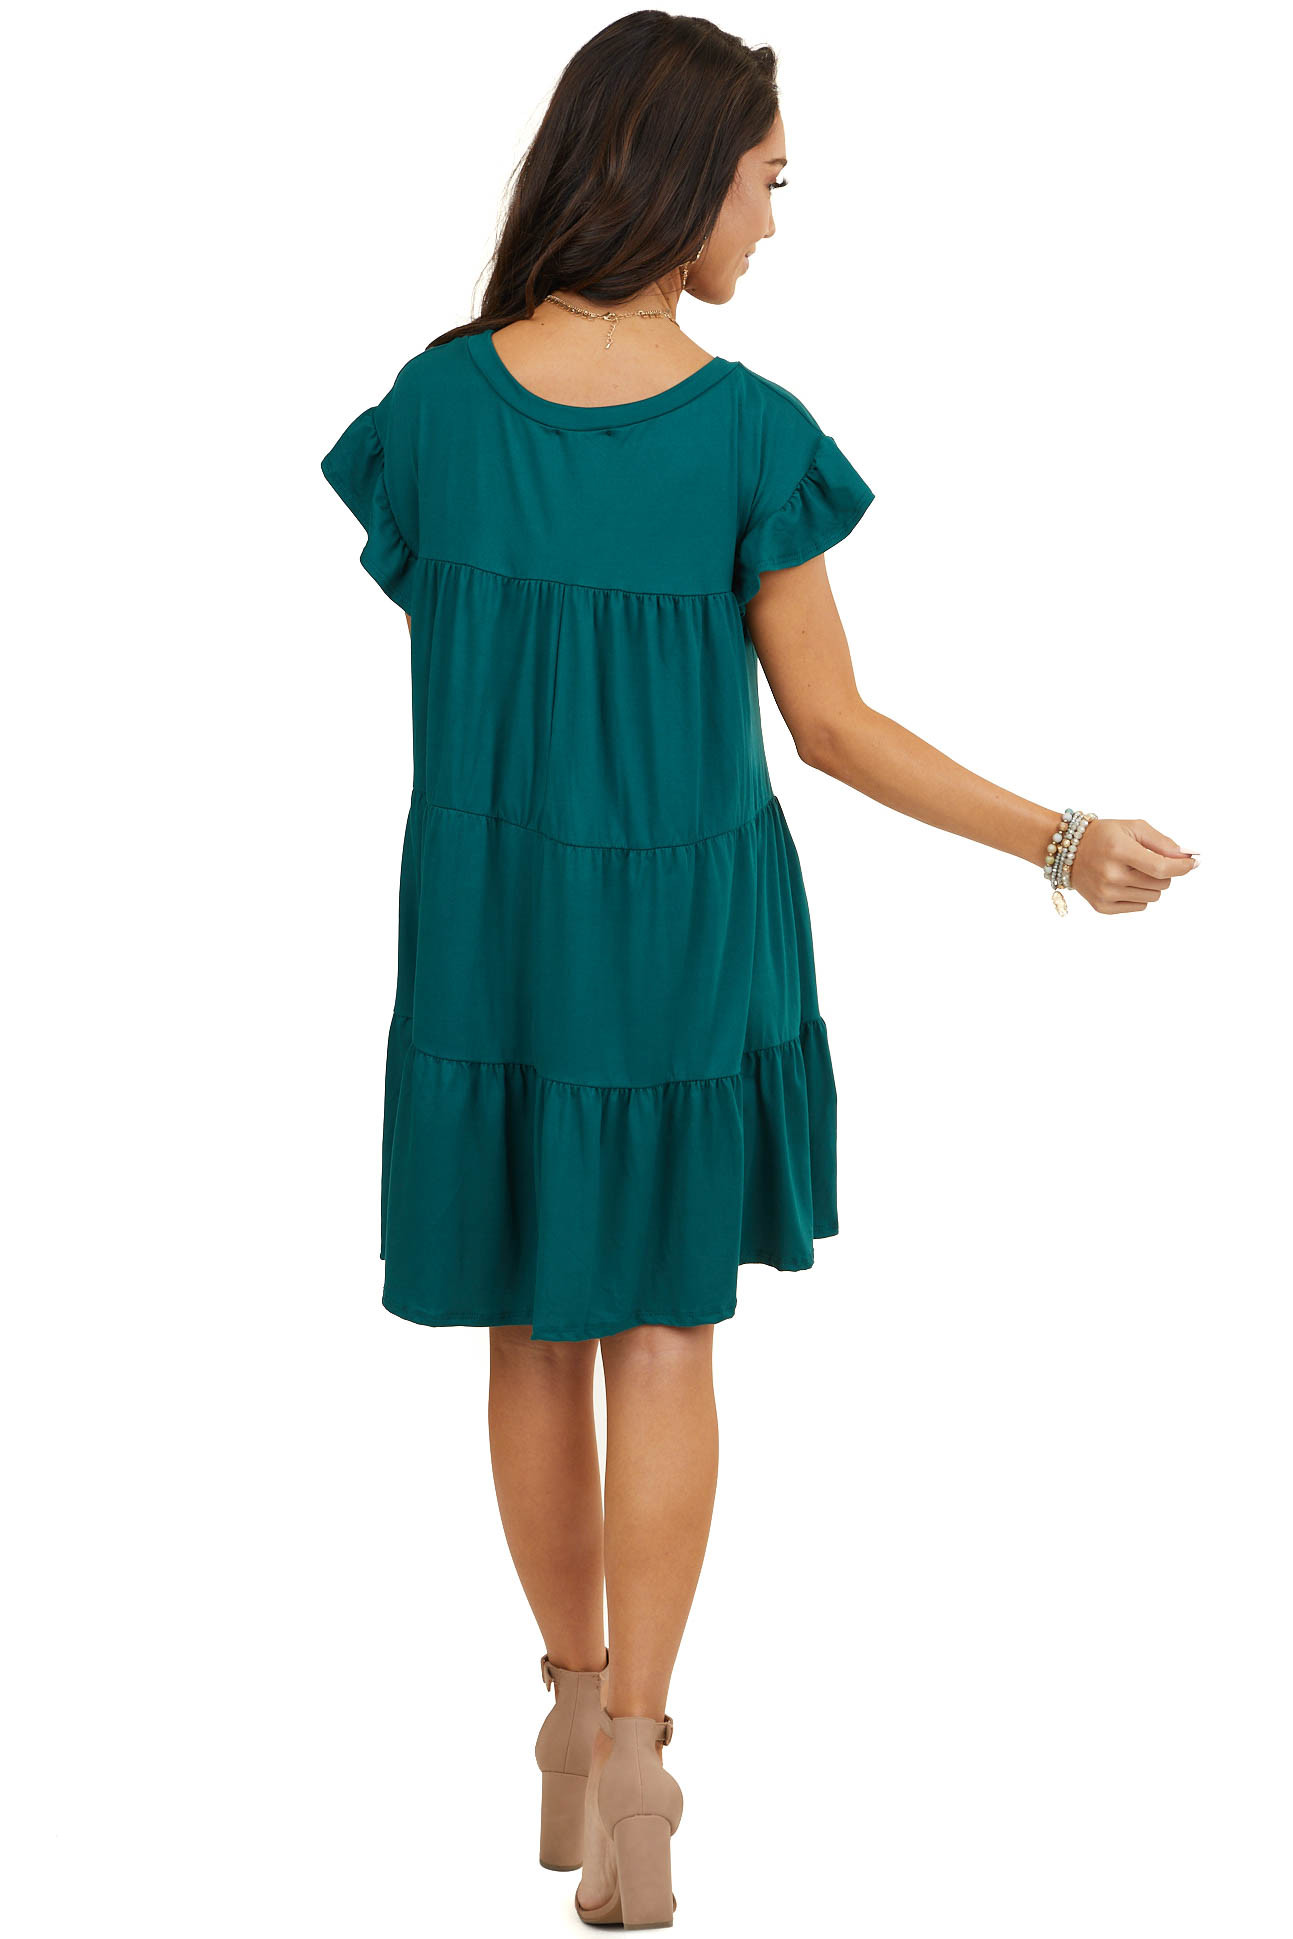 Pine Green Soft Knit Tiered Mini Dress with Ruffle Sleeves